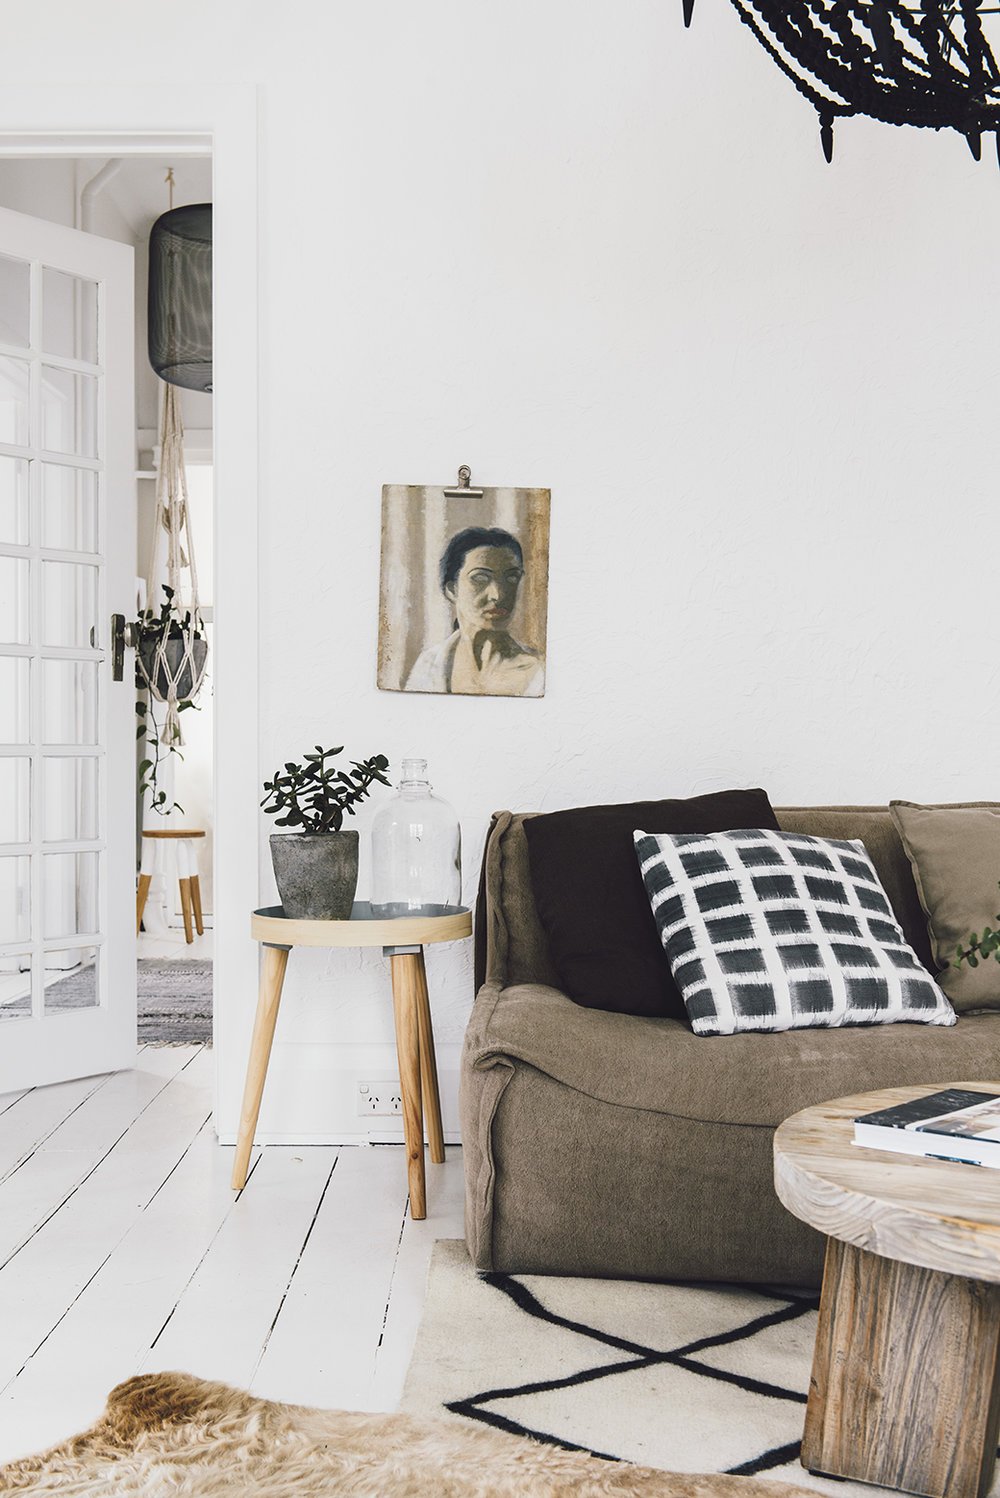 The unframed artwork is just pinned on the wall, and the rustic table and textured grey planter are easy-going accessories. White walls and white floors in this art deco apartment create a cocoon for the stylist-owner's signature collection of casual sofas, old-world artworks, vases and collectables.